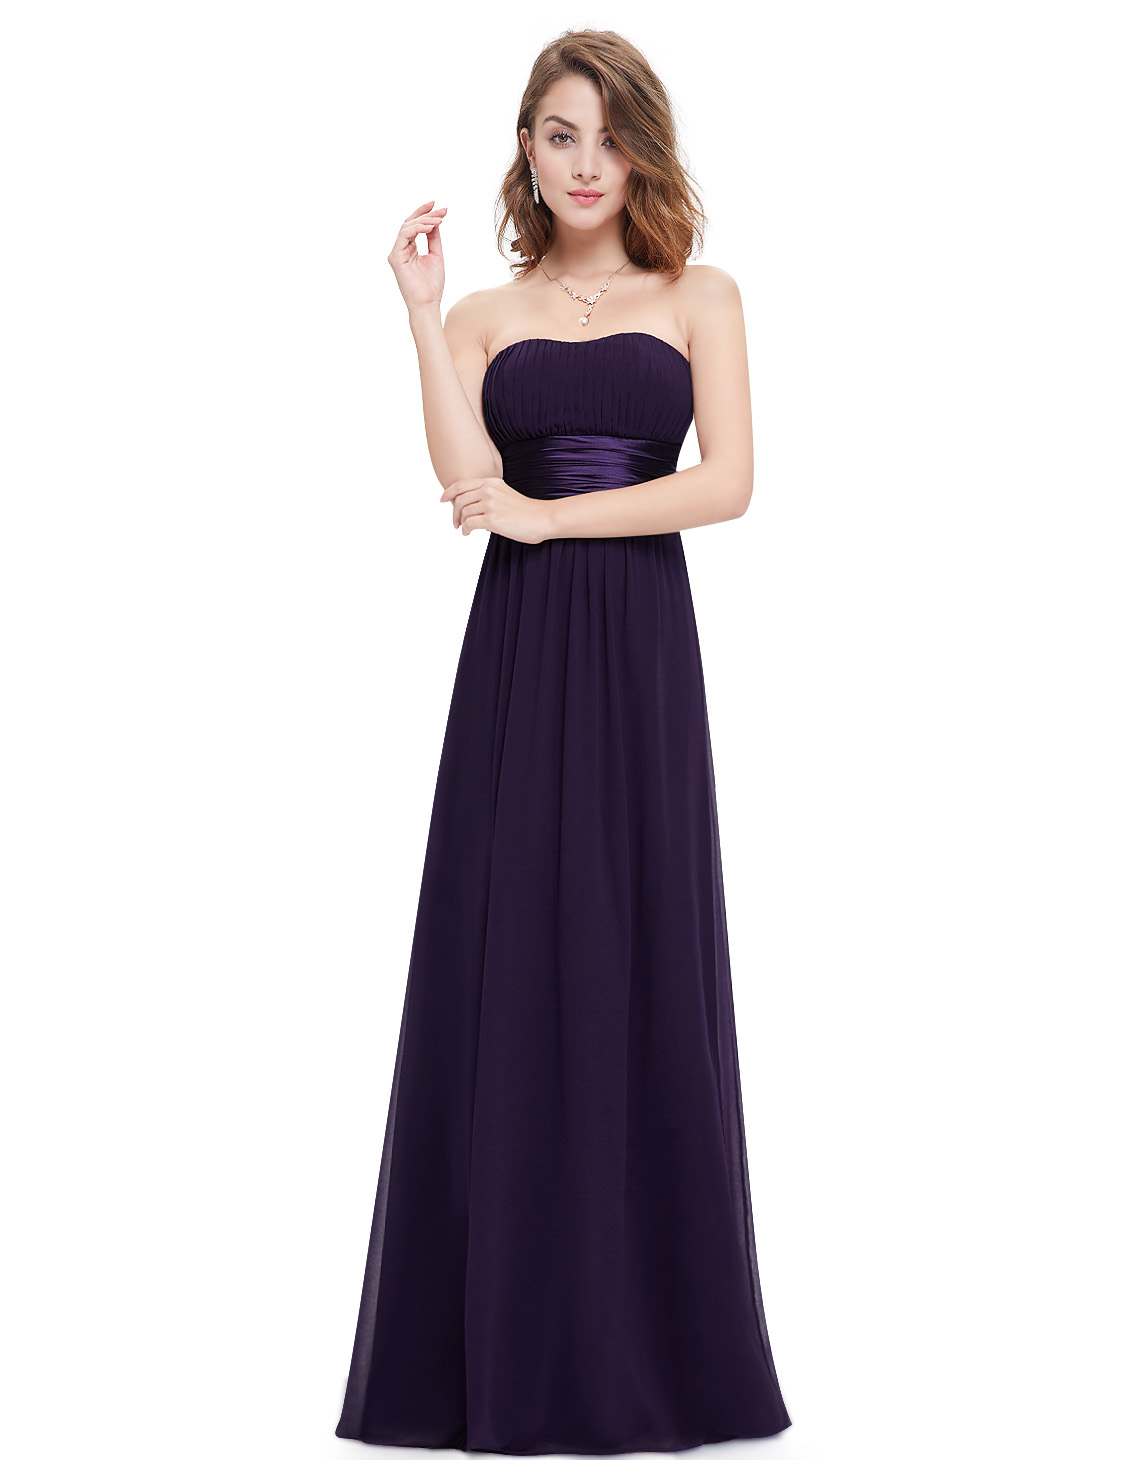 Women 39 s long strapless bridesmaid party dresses formal for Long strapless wedding dresses